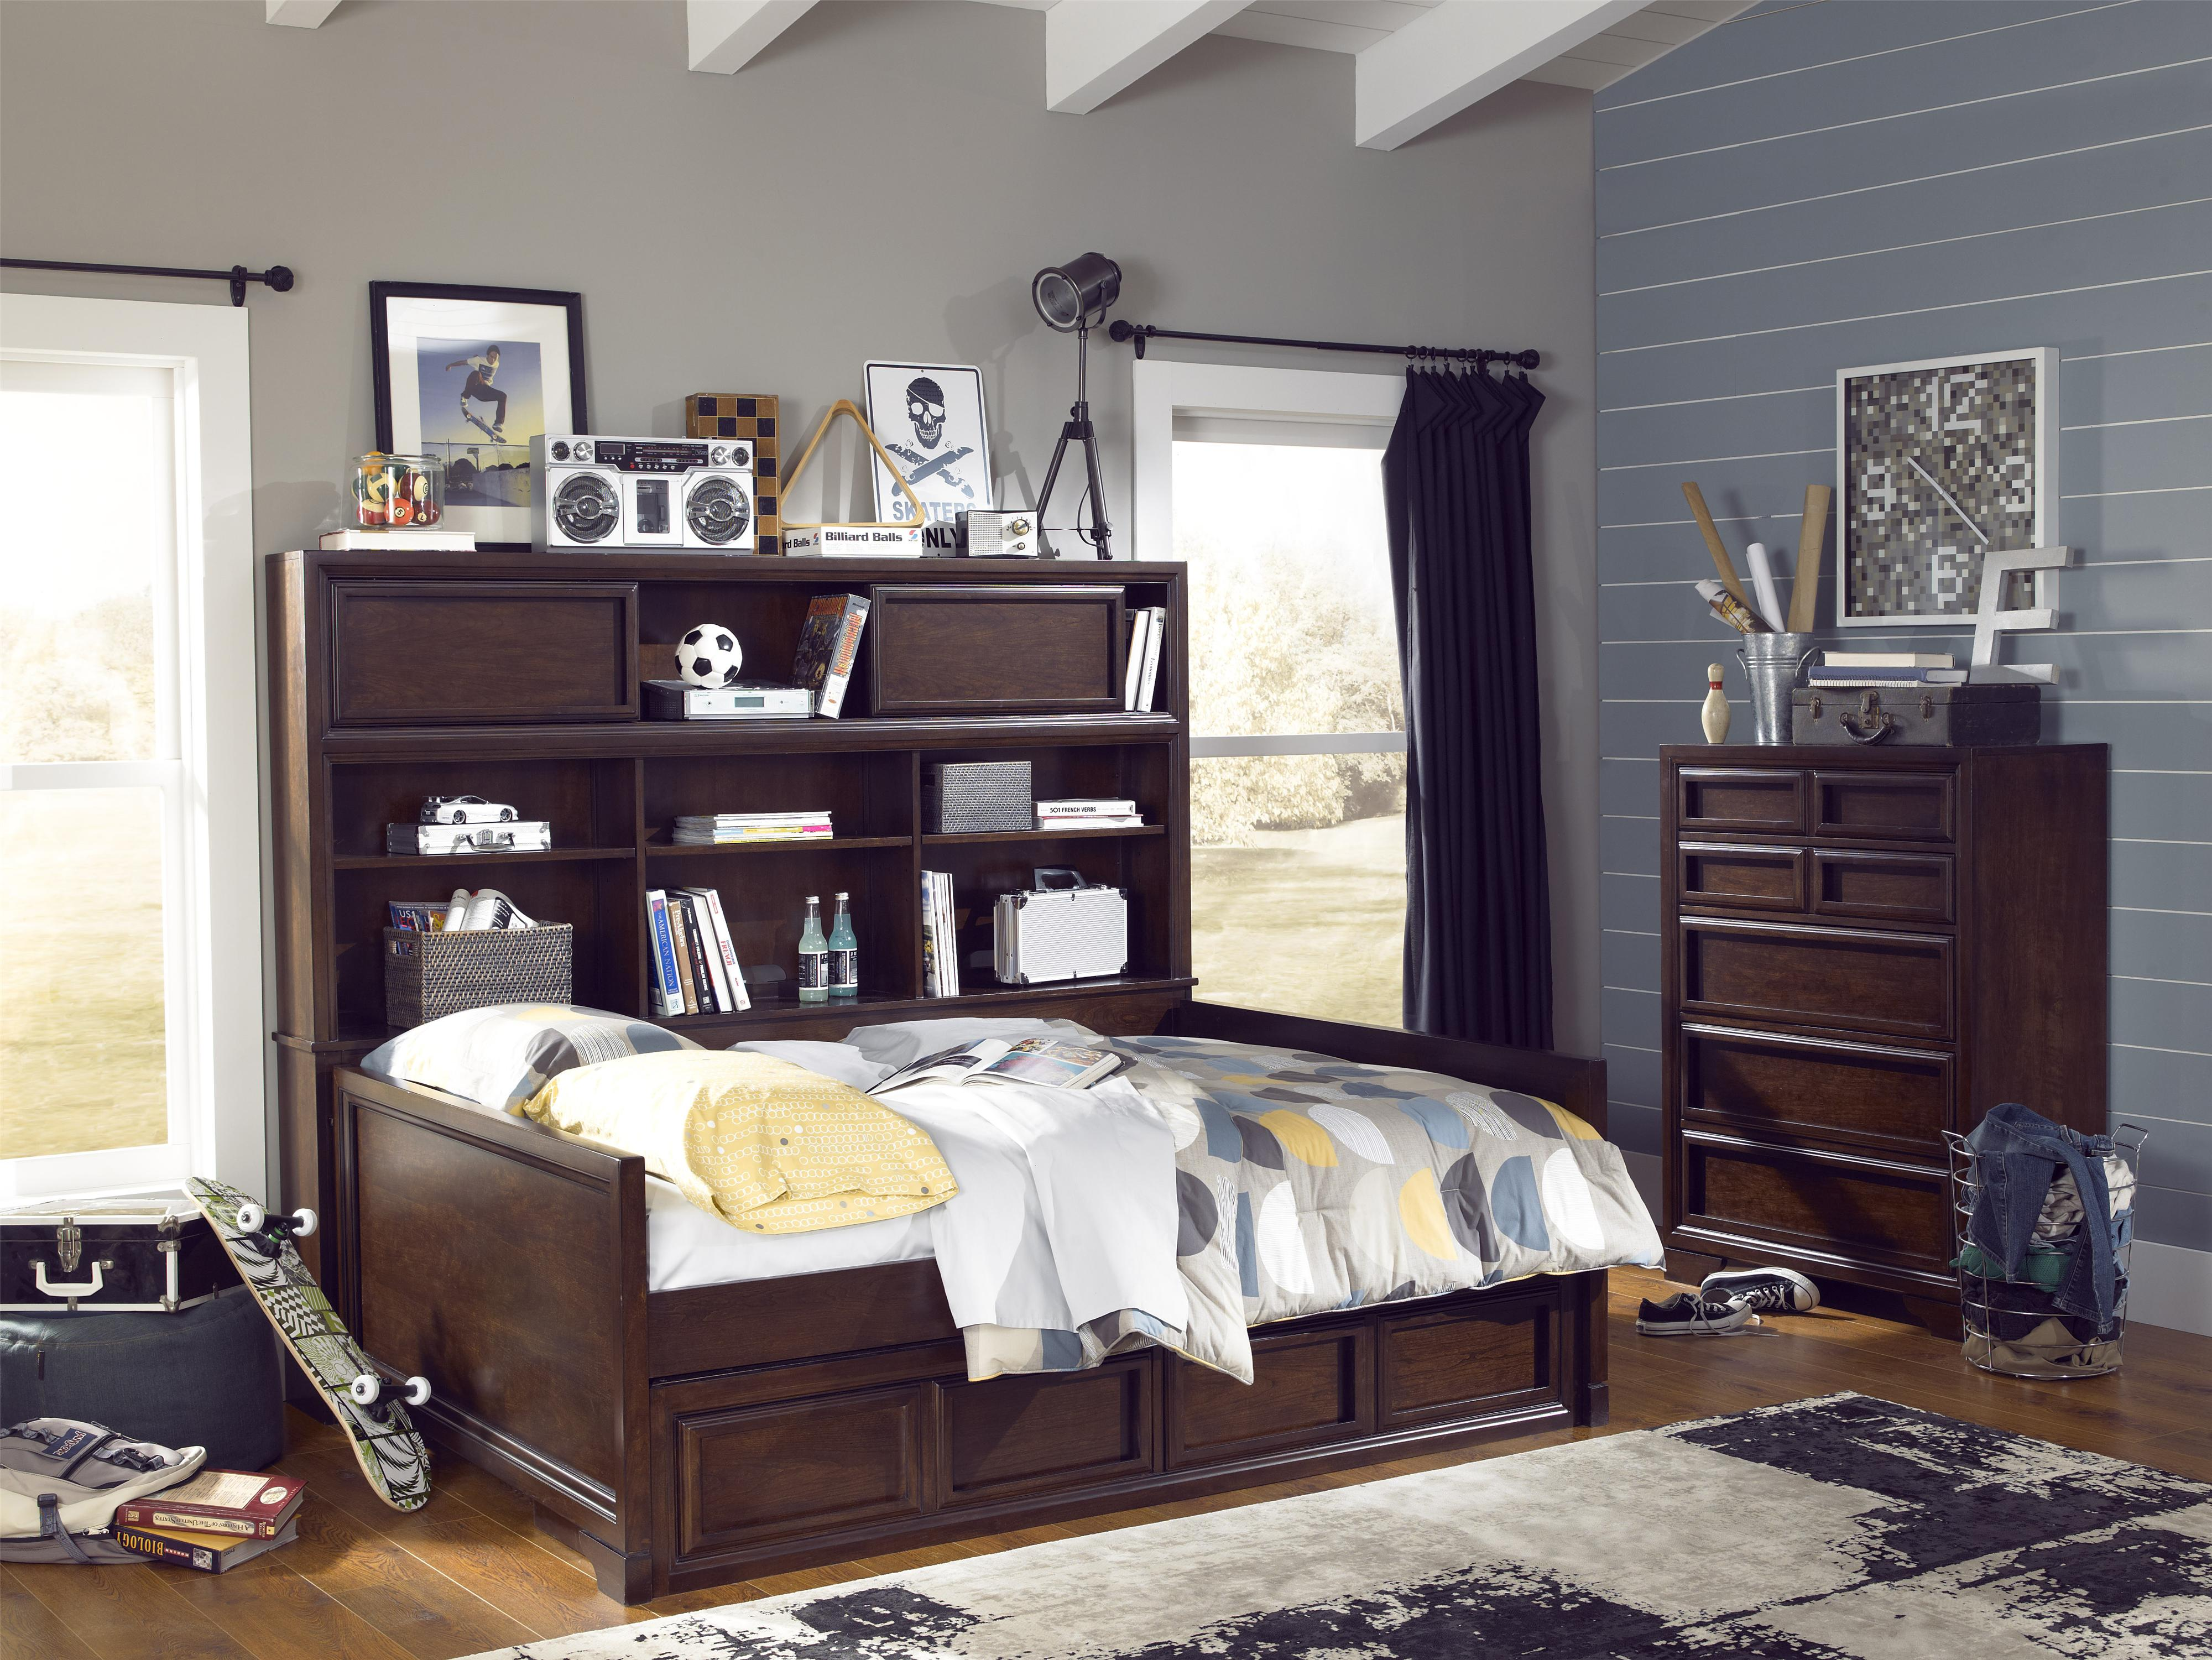 Legacy Classic Kids Benchmark Full Bedroom Group - Item Number: 2970 F Bedroom Group 2